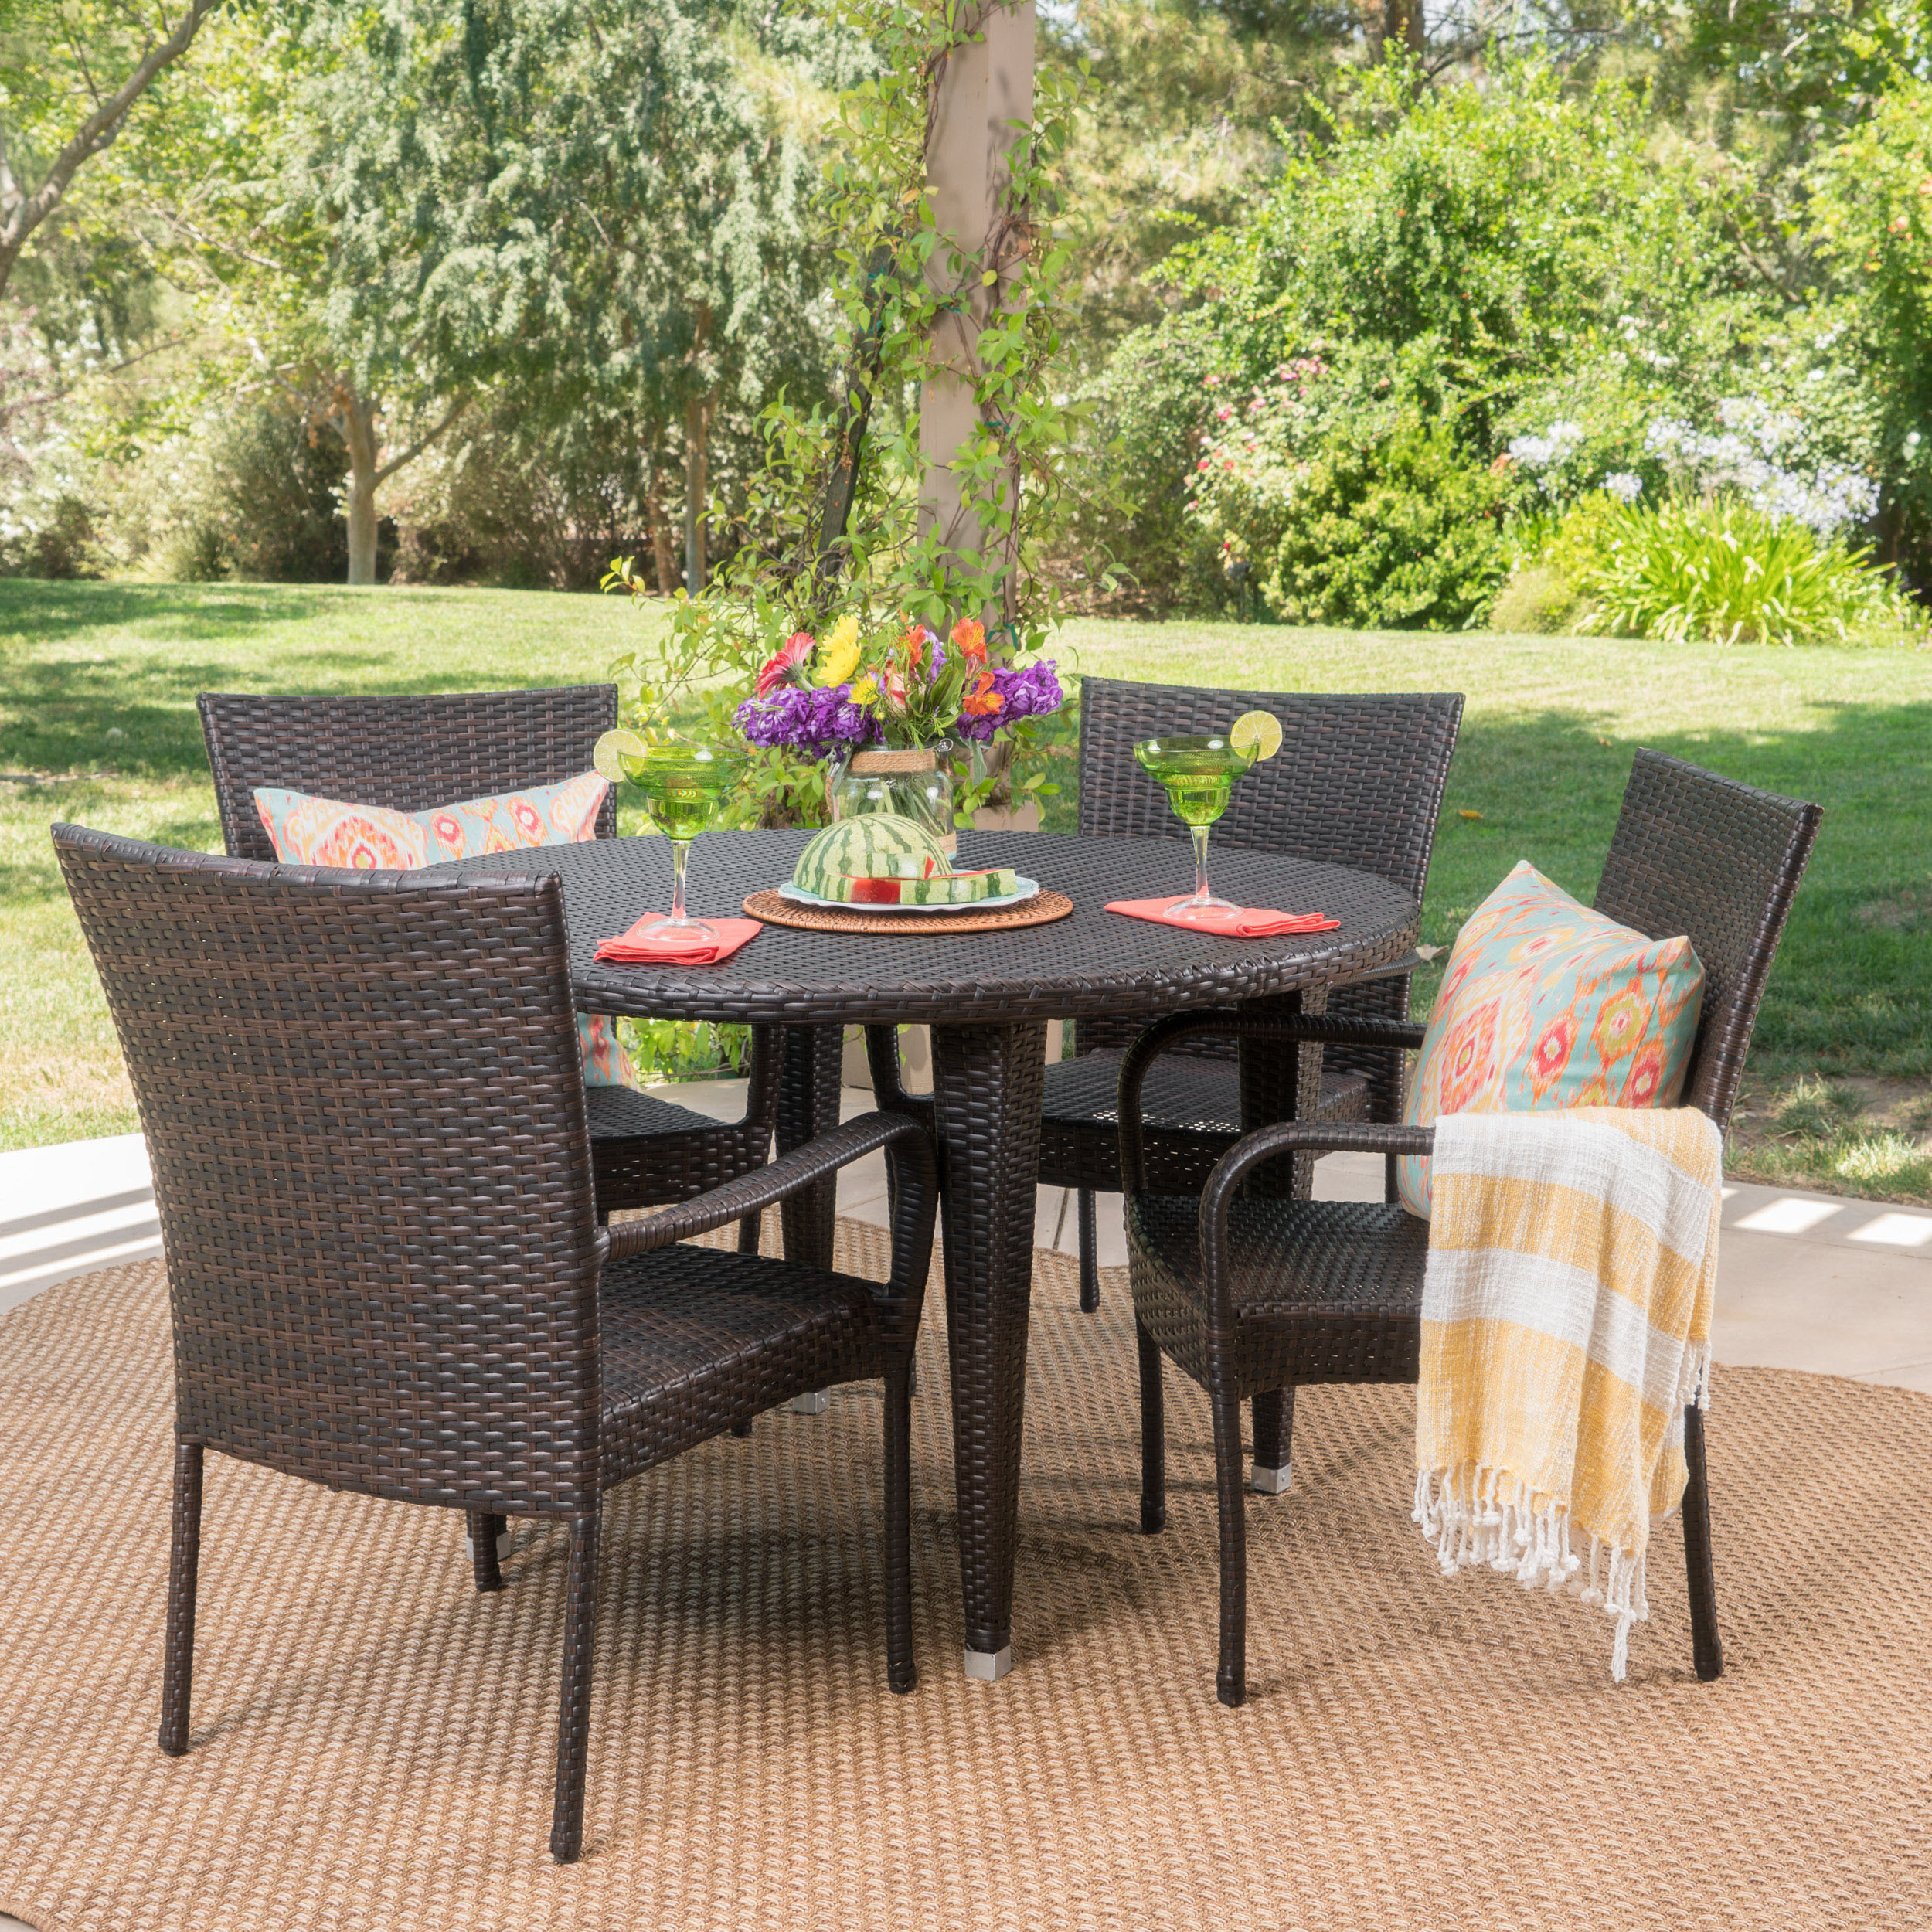 Currington Outdoor 5 Piece Wicker Circular Dining Set, Multibrown